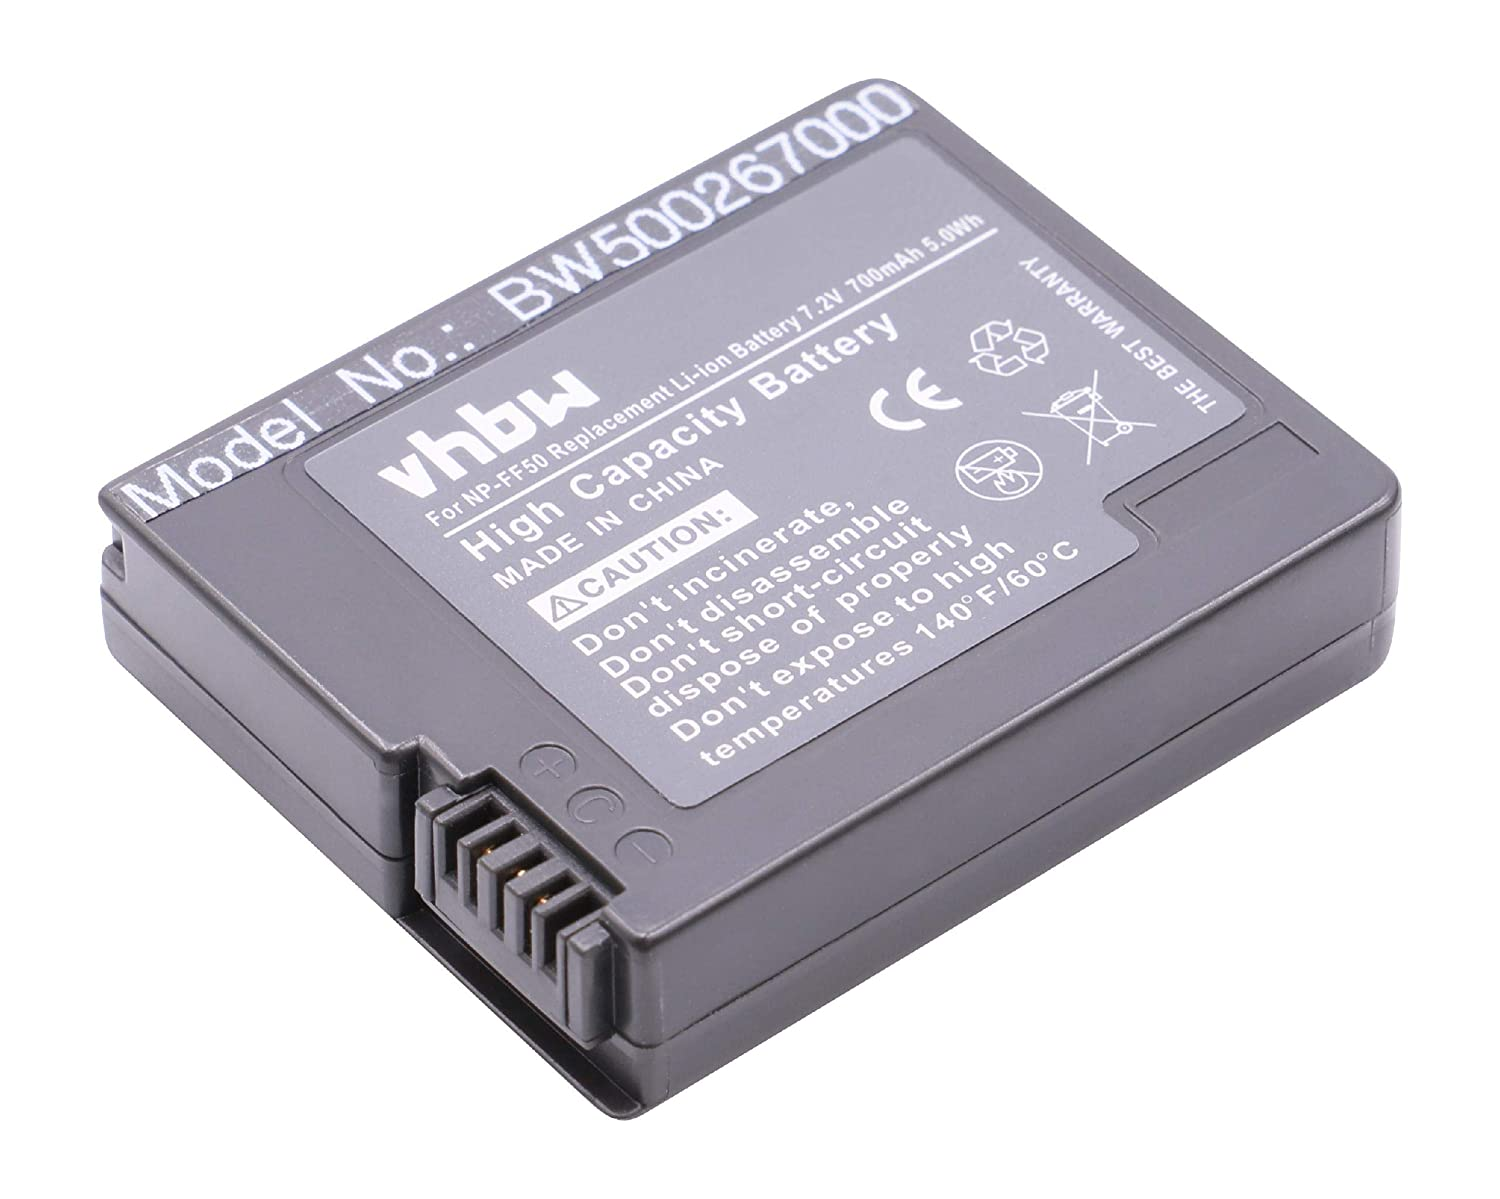 BATER/ÍA LI-Ion 700mAh 7.2 V Compatible con Sony sustituye Sony NP-FF50 NP-FF51